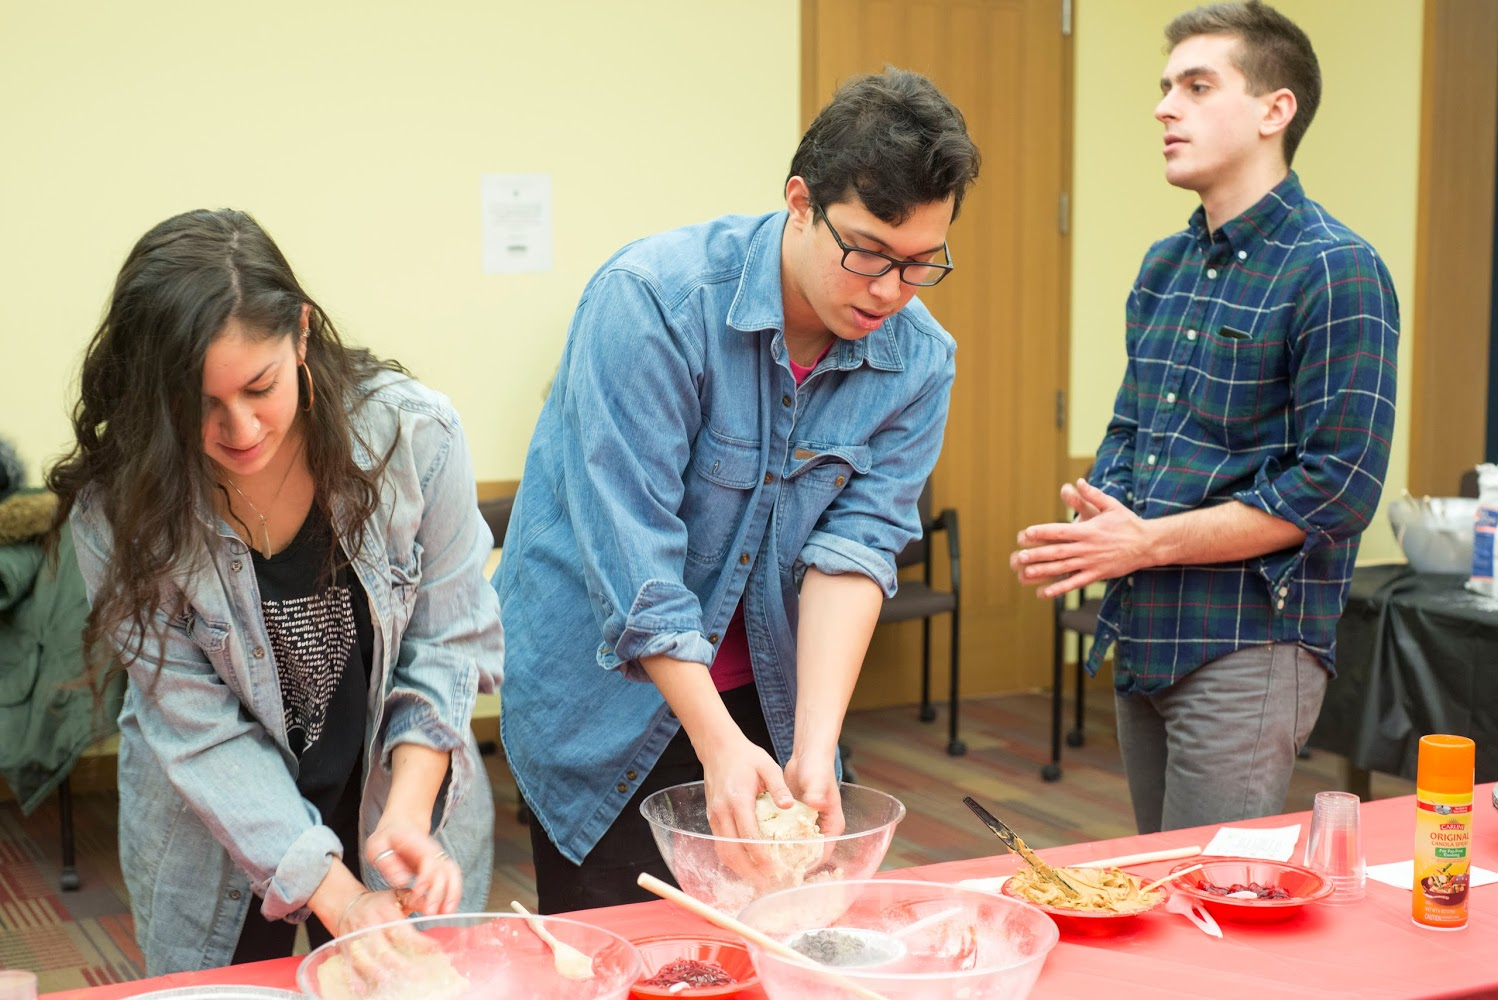 """Making hamantaschen from scratch is surprisingly simple, even for people like me who have no baking skills but still want to connect to a yummy tradition,"" Rebecca Seidel '15 said. ""It was a great way to take a break from midterms while feeling a bit closer to home."""